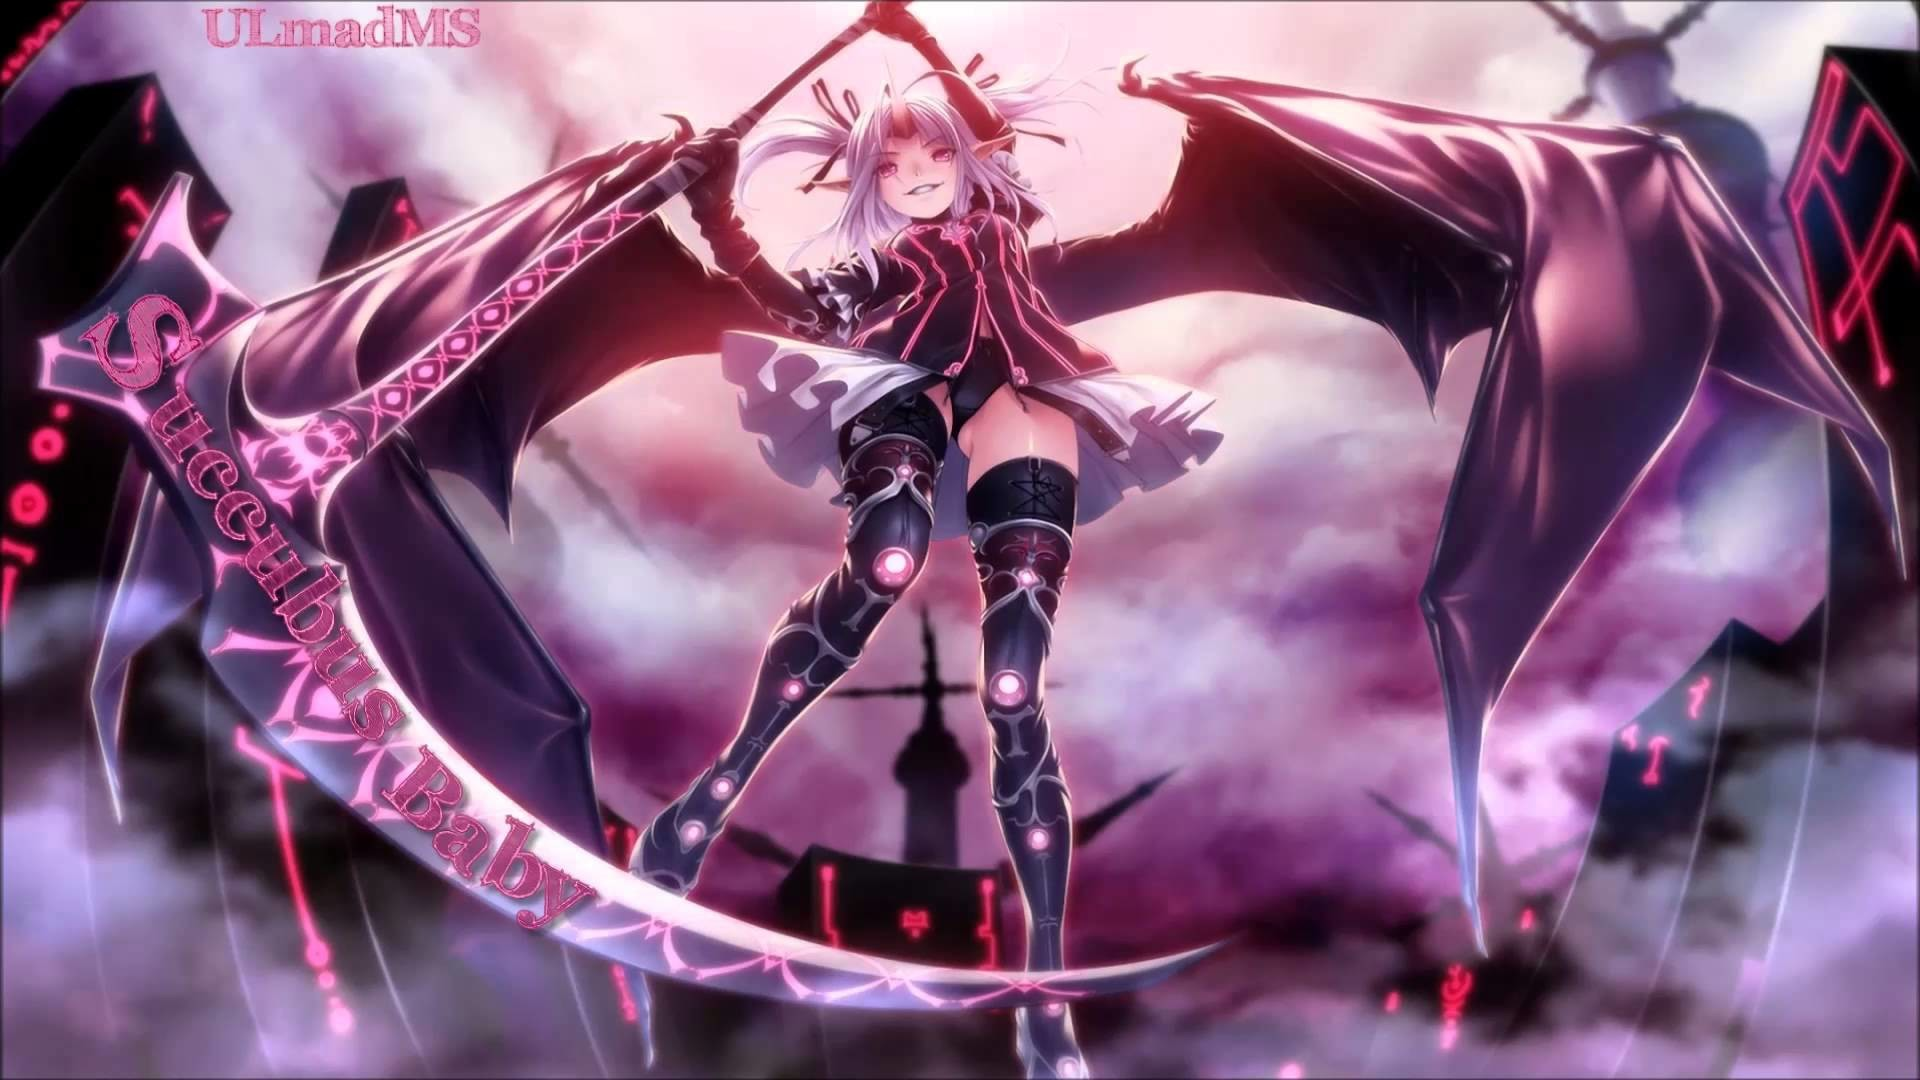 Succubus Wallpaper HD (59+ images)